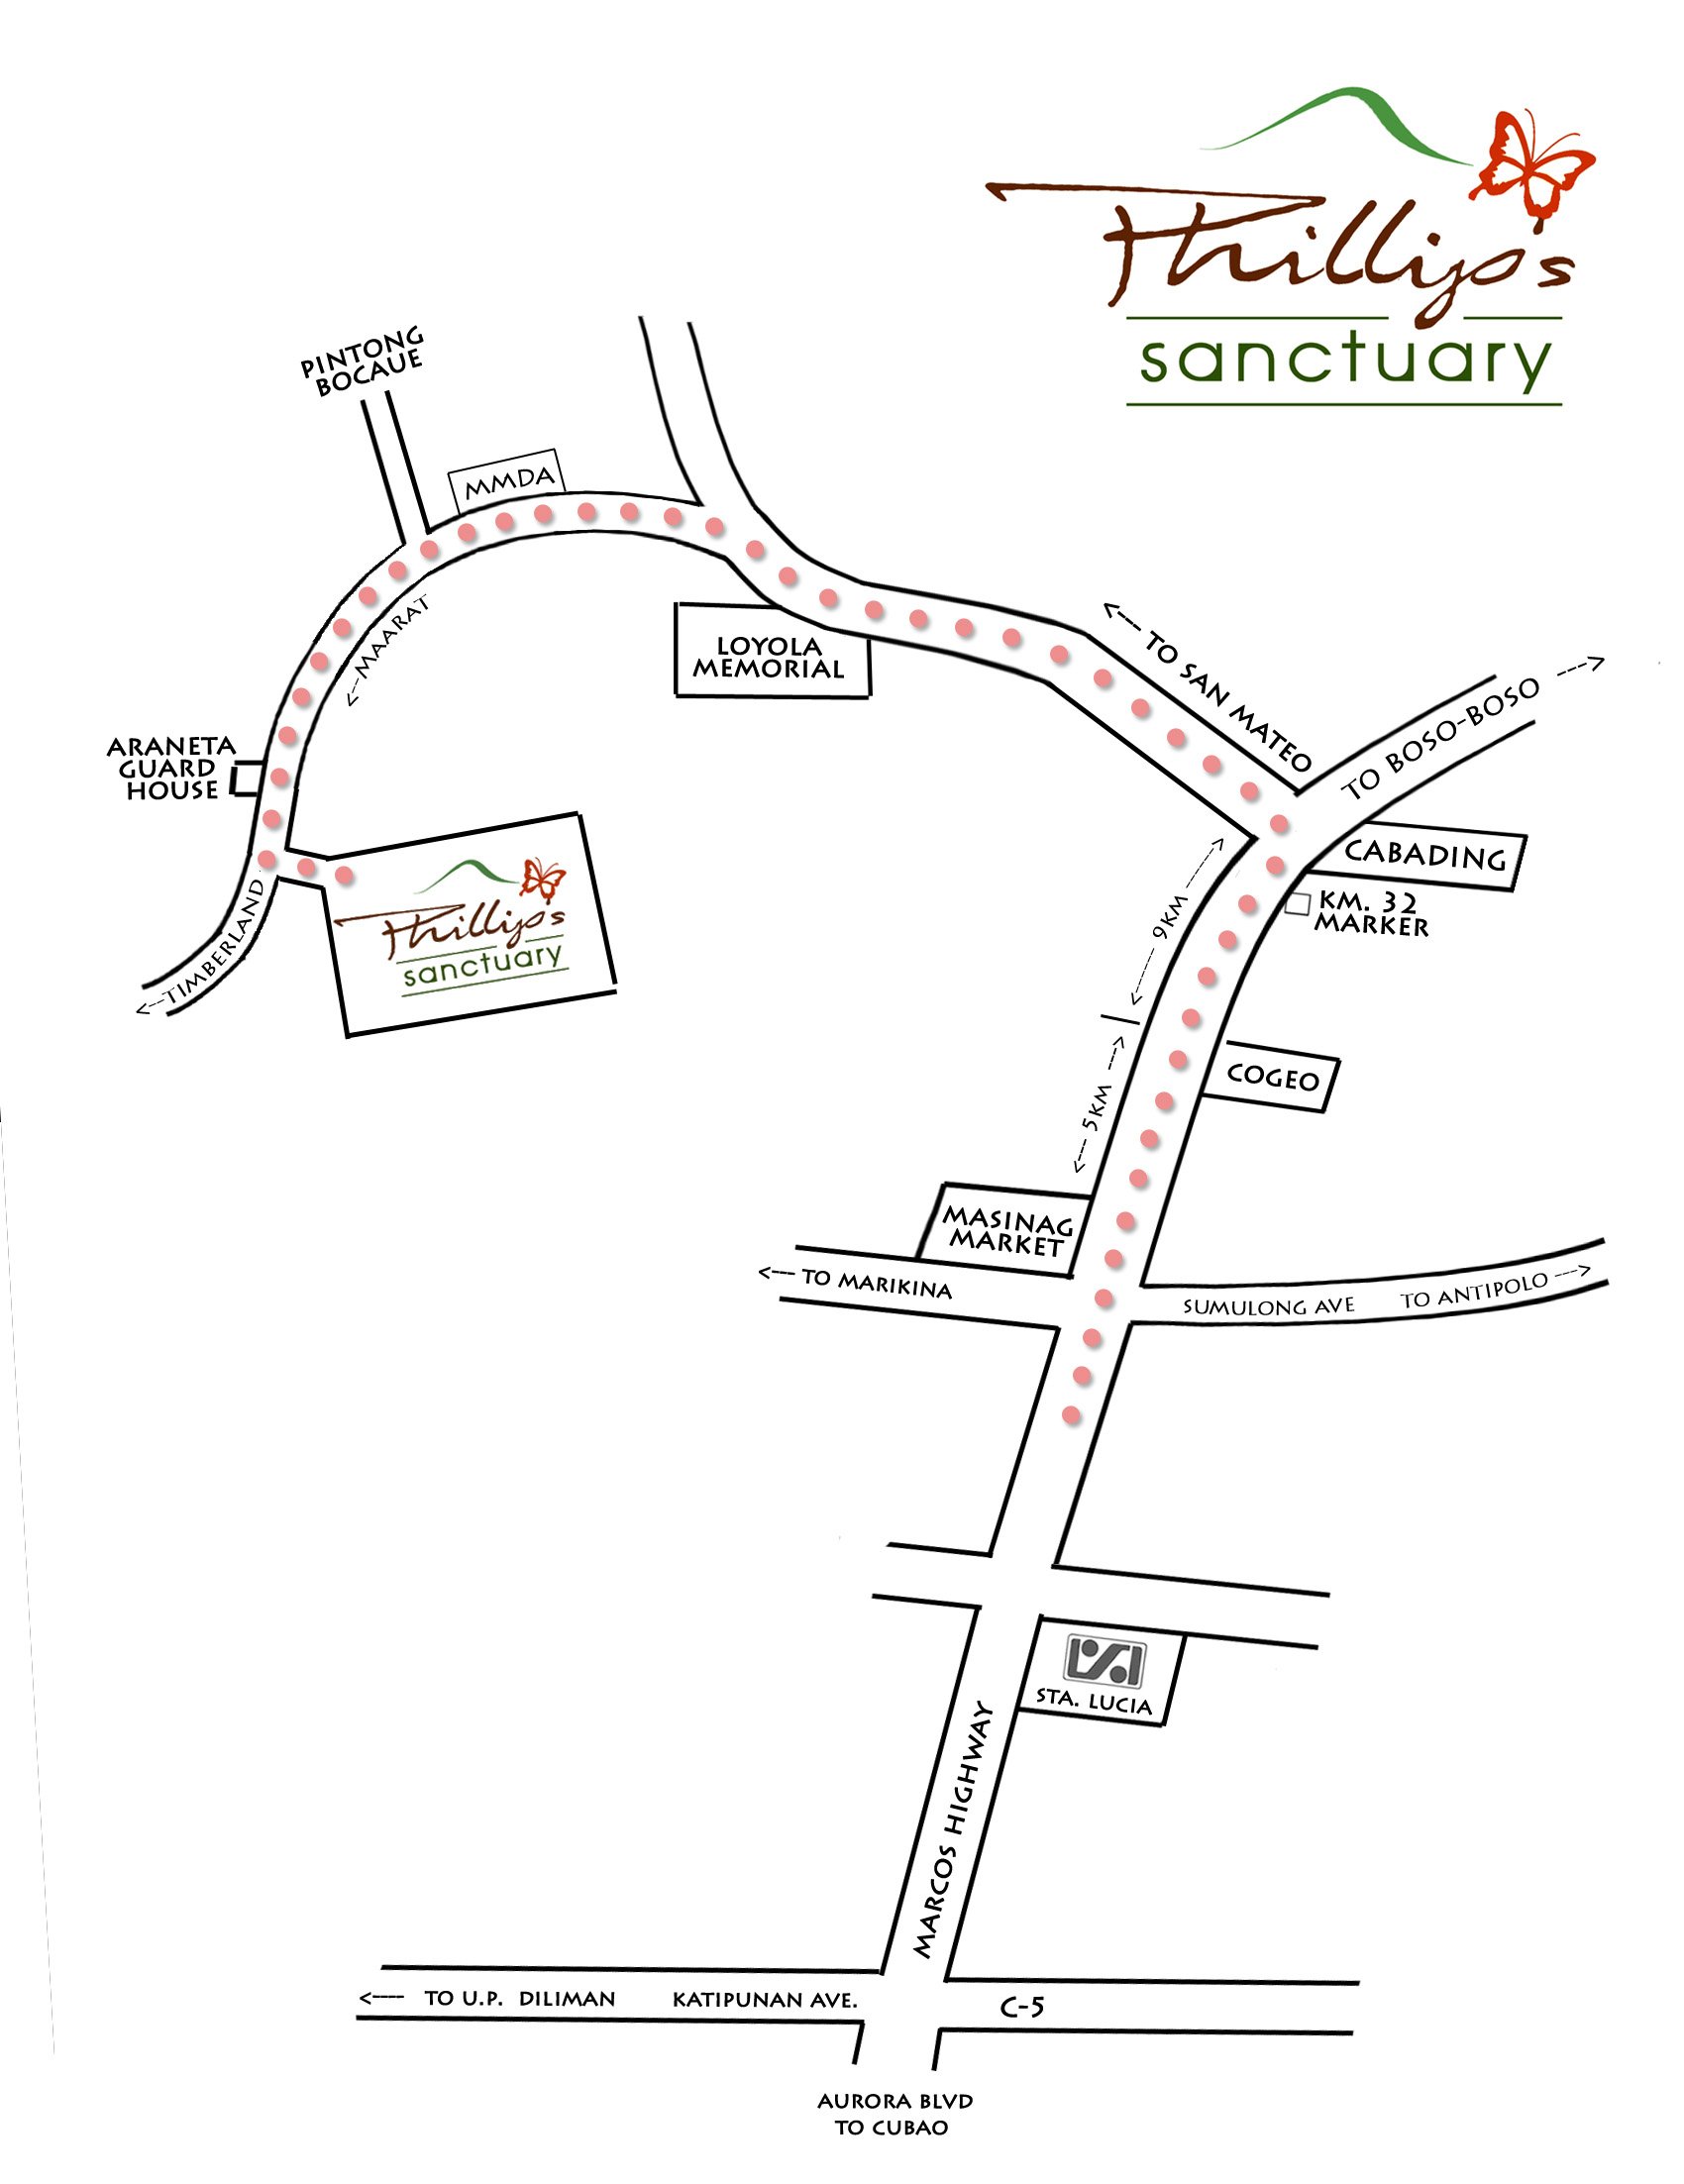 phillip's sanctuary map